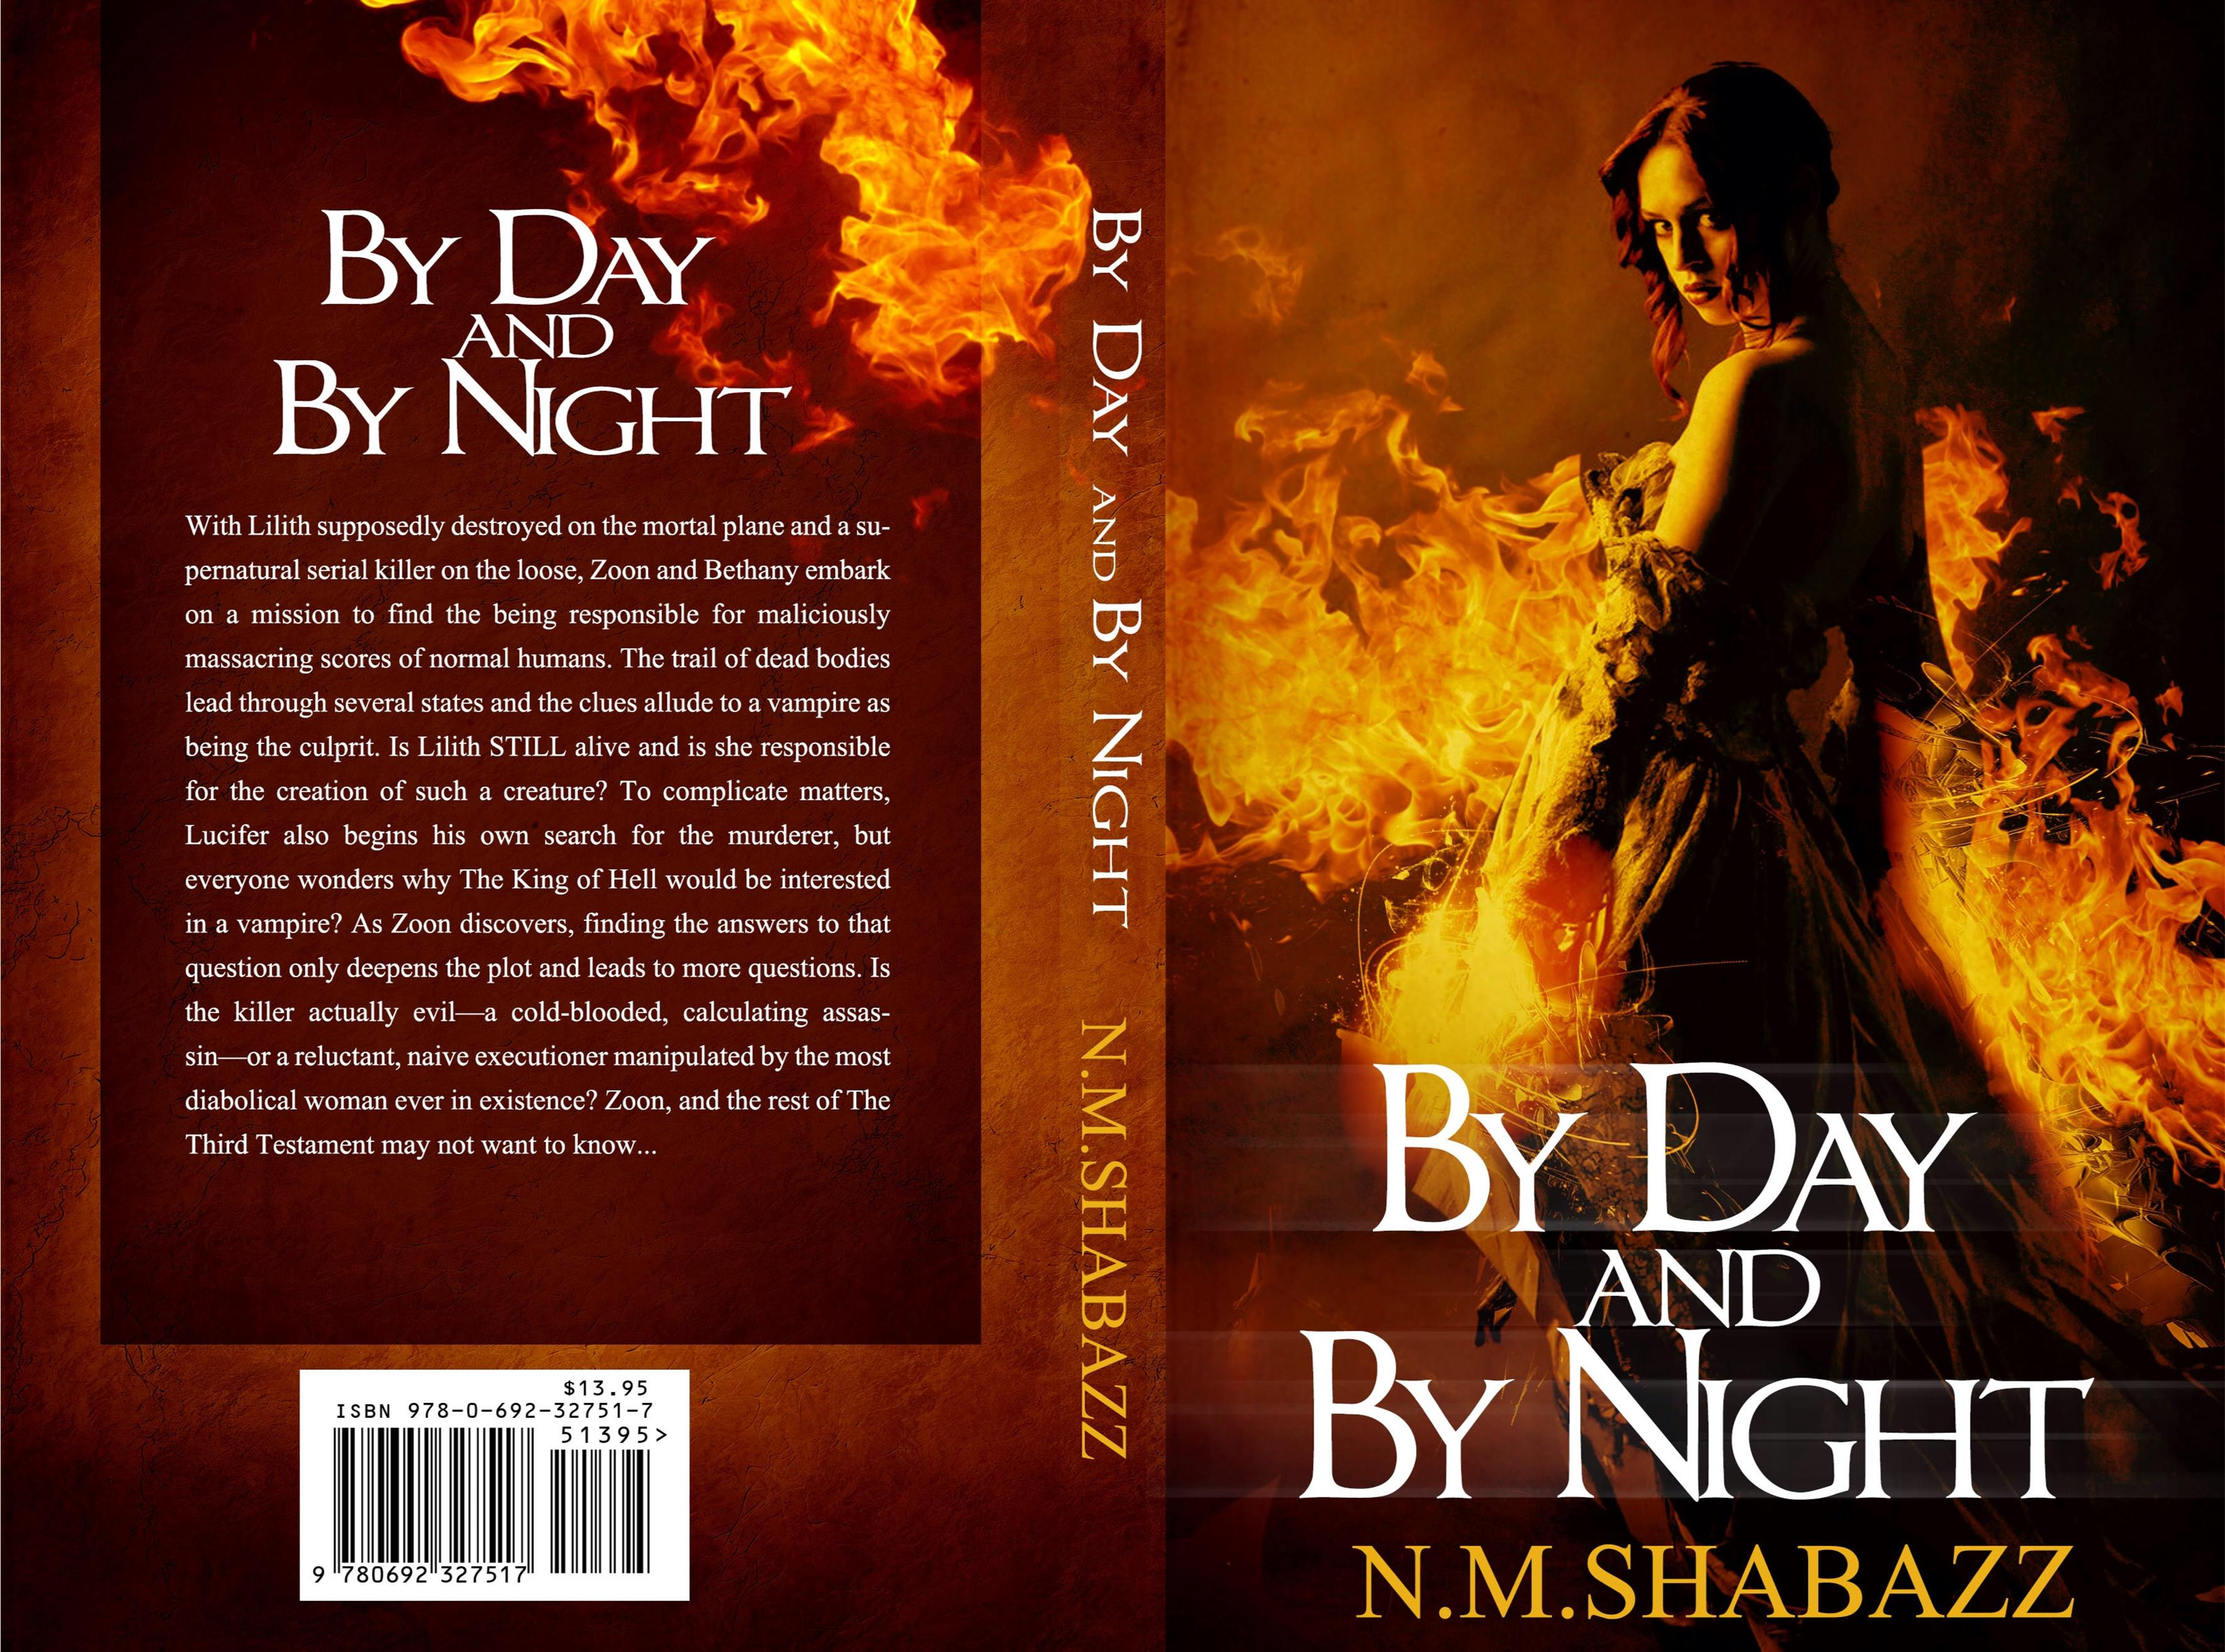 By Day and By Night cover image